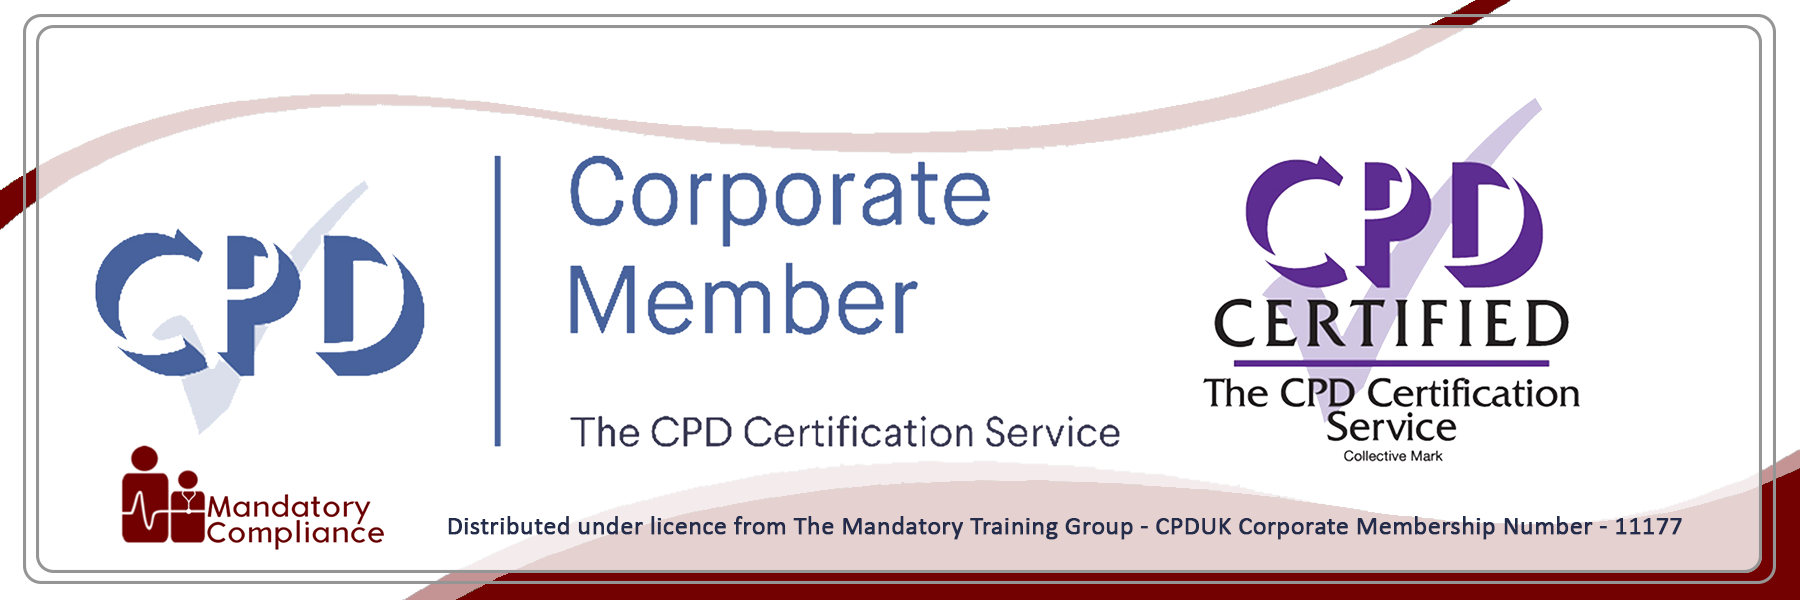 Care Certificate Standard 9 - Train the Trainer - The Mandatory Compliance UK -